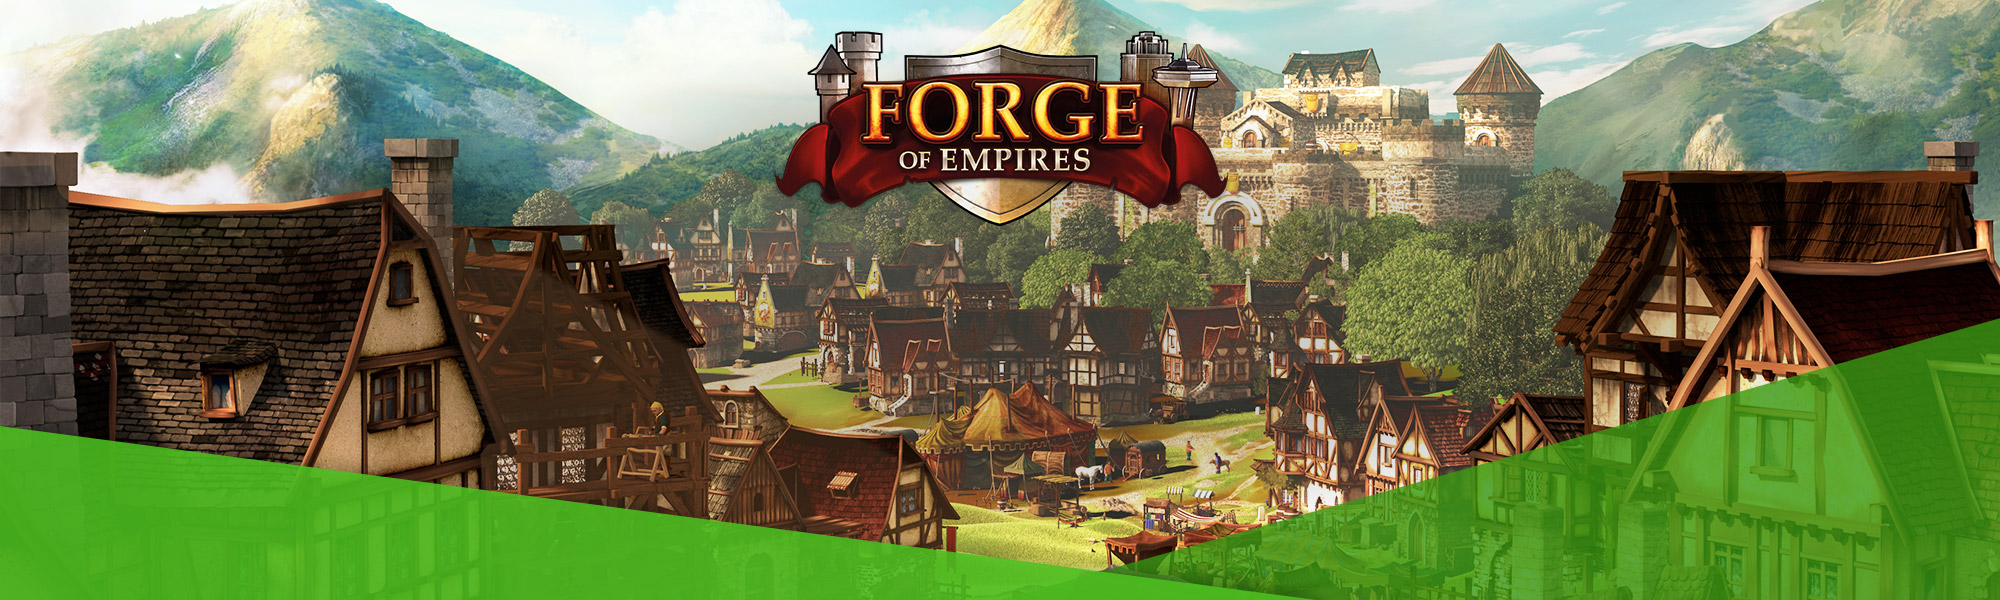 Forge of Empires - Aufbau-Strategiespiel